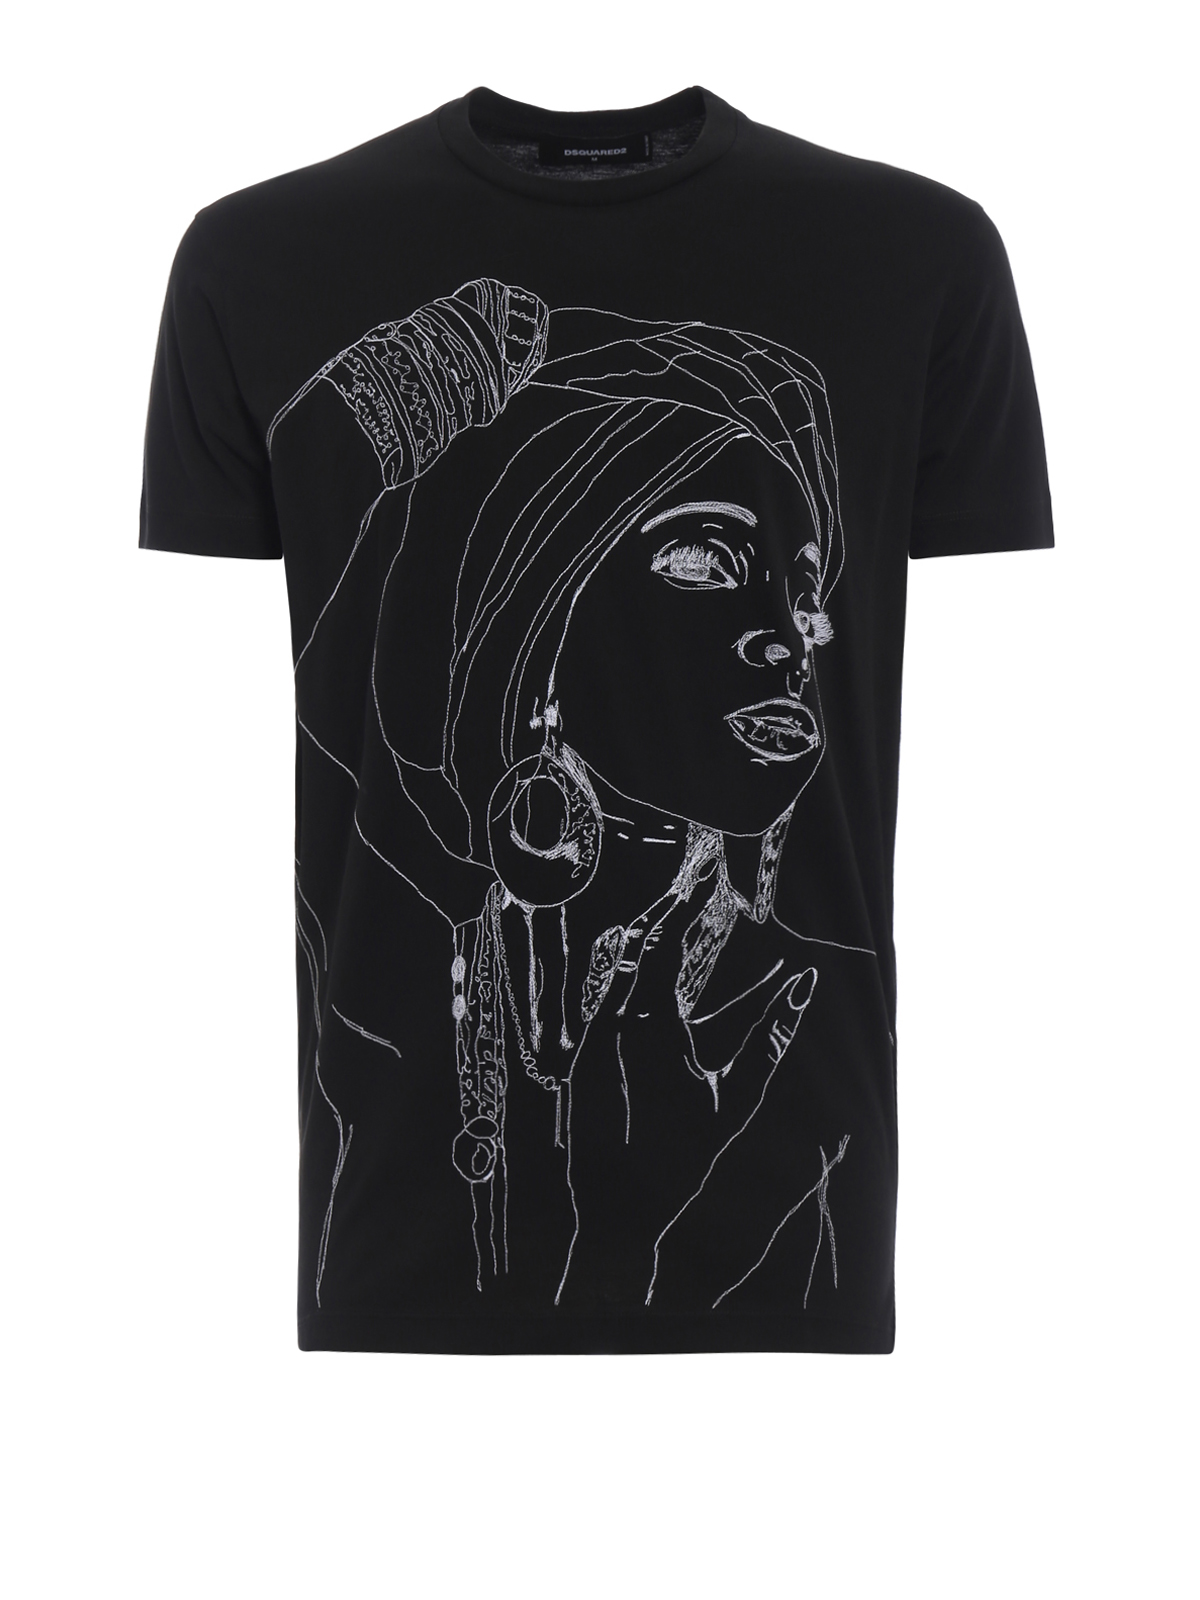 Sketch effect embroidered black Tee - DSQUARED2 - Paolo Fiorillo e5cf24ee9bff3